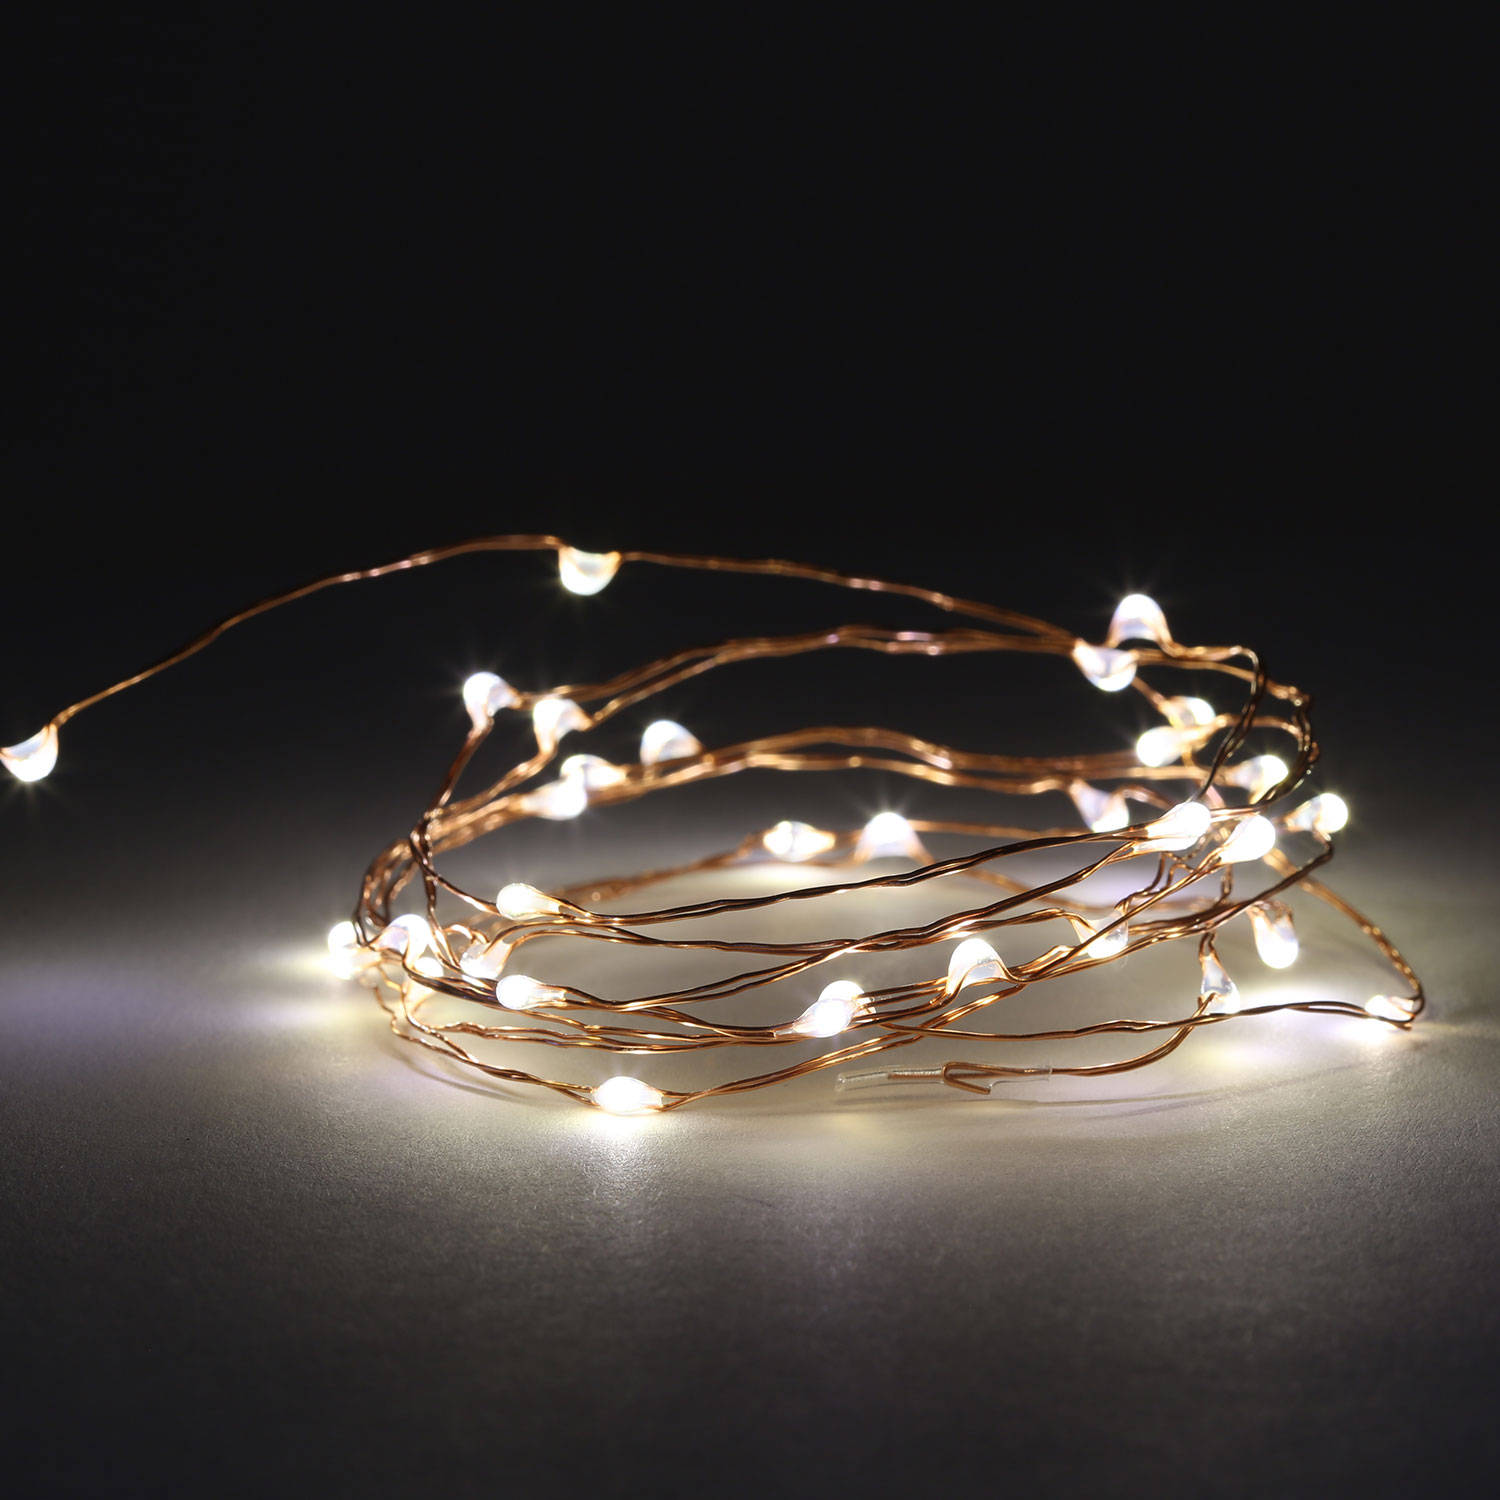 Outdoor Lighting Strings picture on warm white constellation series wire battery string lights p 37143 with Outdoor Lighting Strings, Outdoor Lighting ideas d11f1b8cff2f4bb3eae5b612a9e468ef